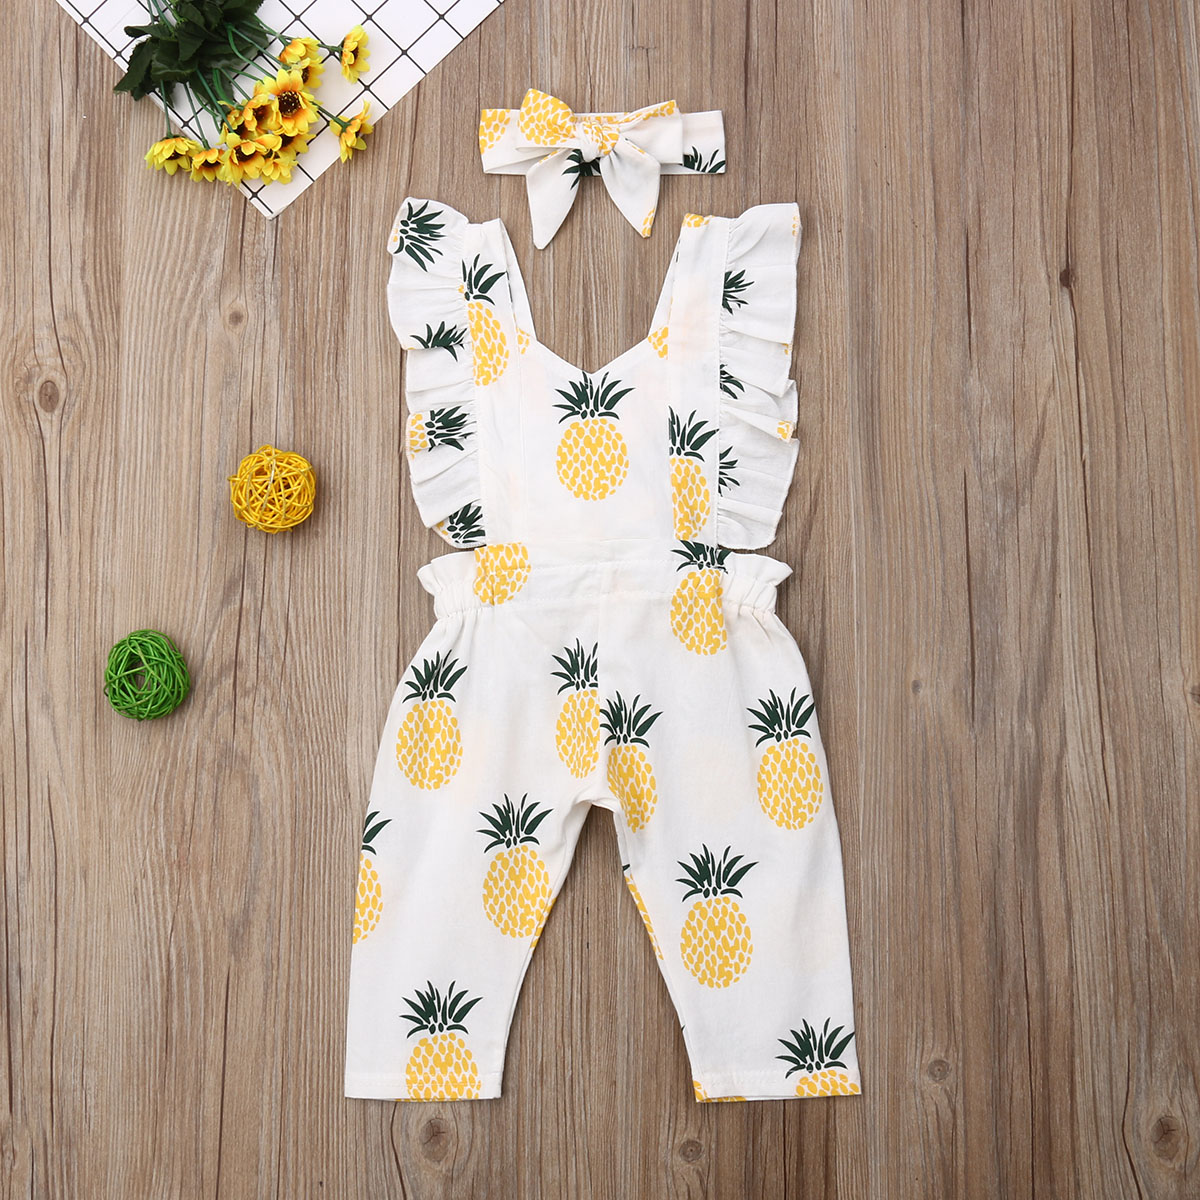 Emmababy Newborn Baby Girl Clothes Sleevless Ruffle Pineapple Print Romper Jumpsuit Headband 2Pcs Outfits Clothes Summer